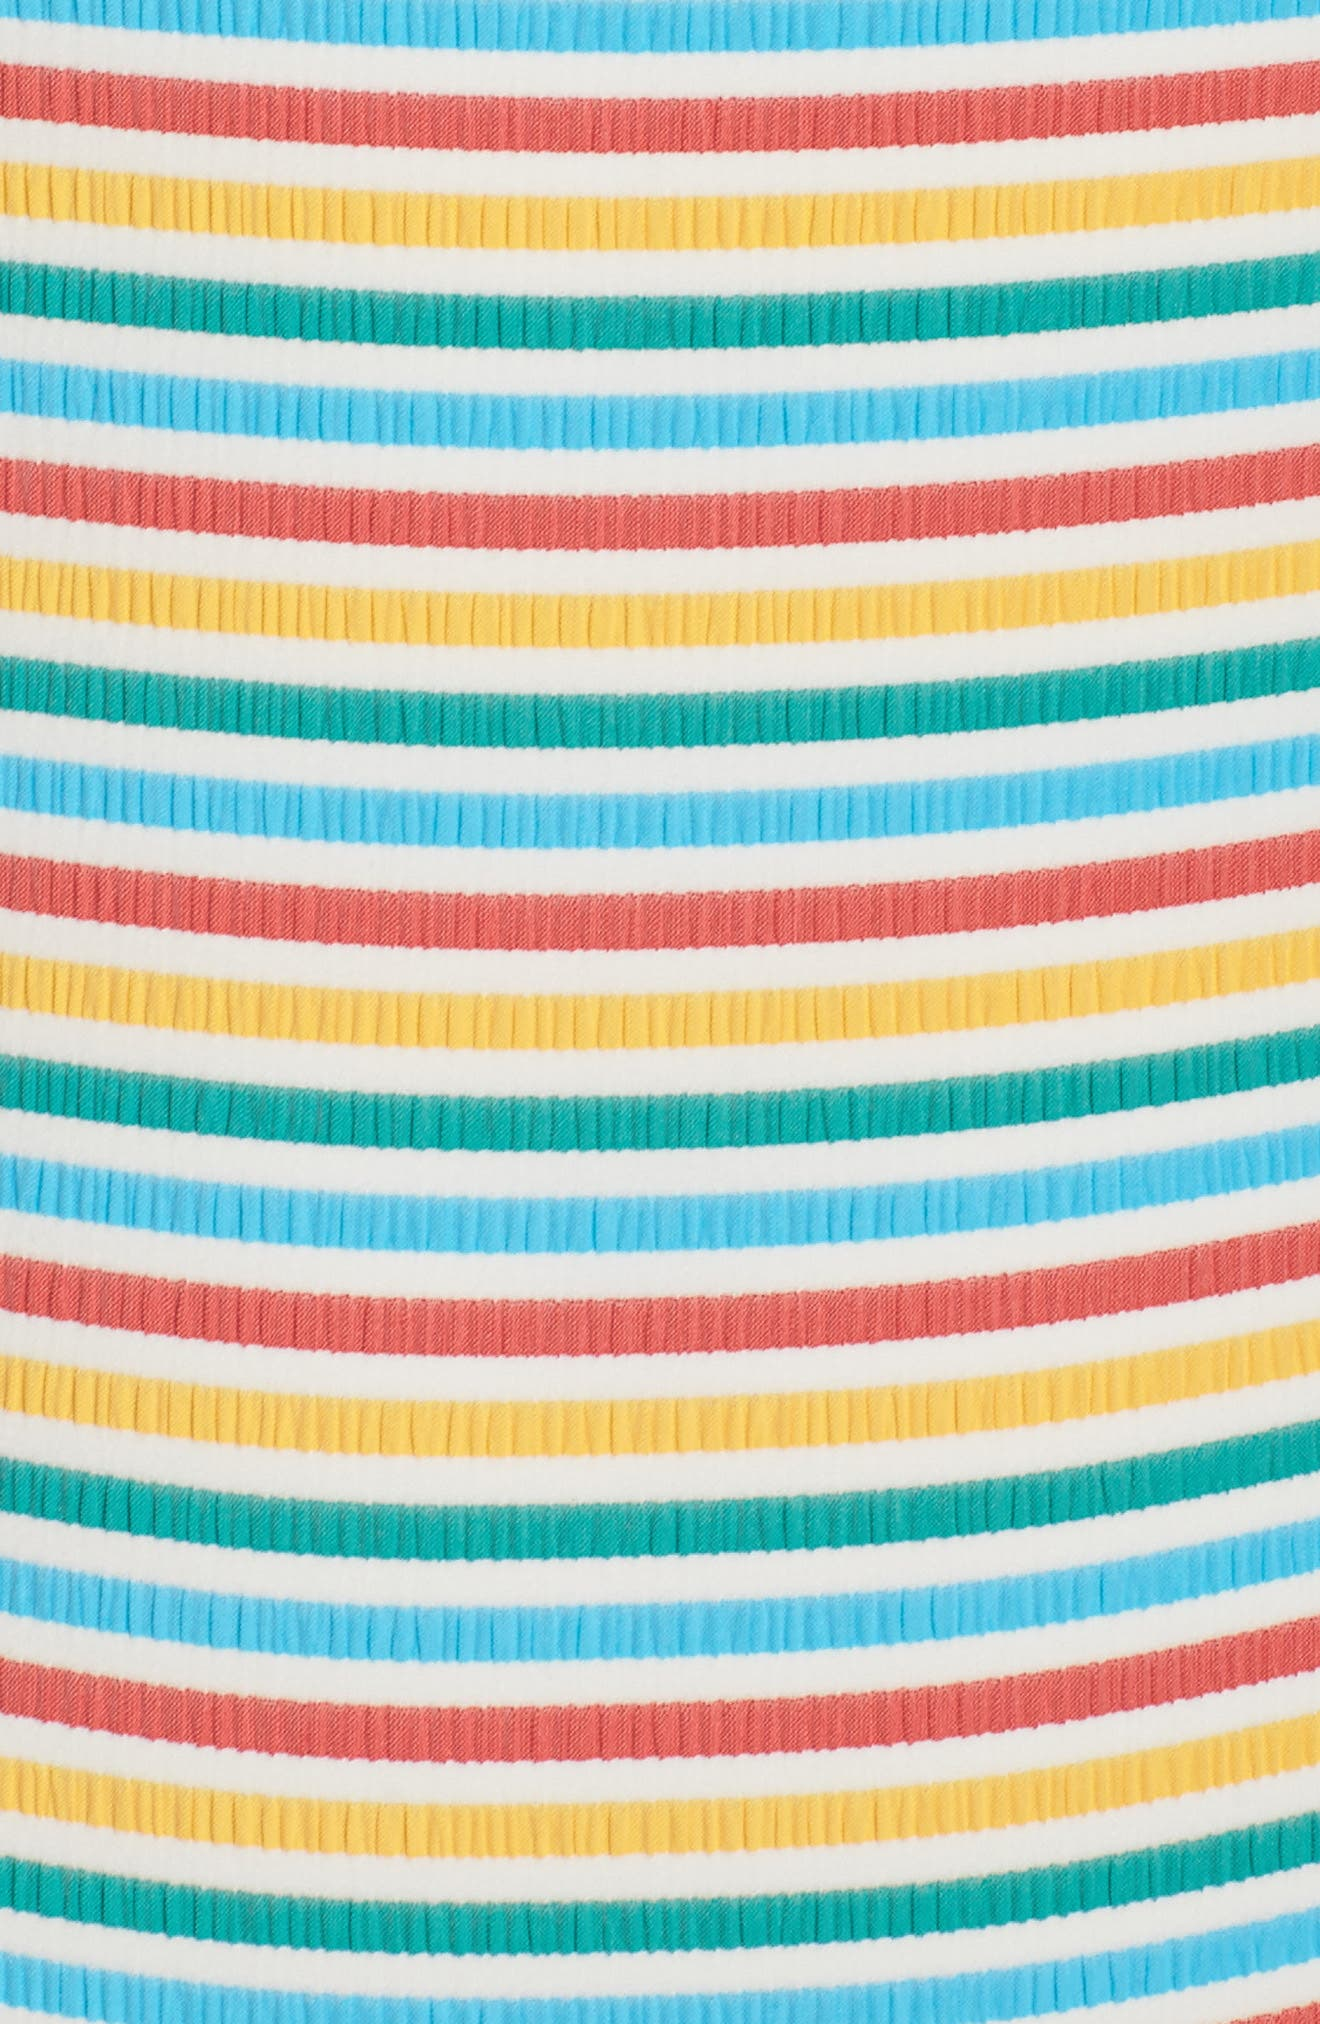 Stripe Low Back One-Piece Swimsuit,                             Alternate thumbnail 5, color,                             Yellow/ Blue/ Red